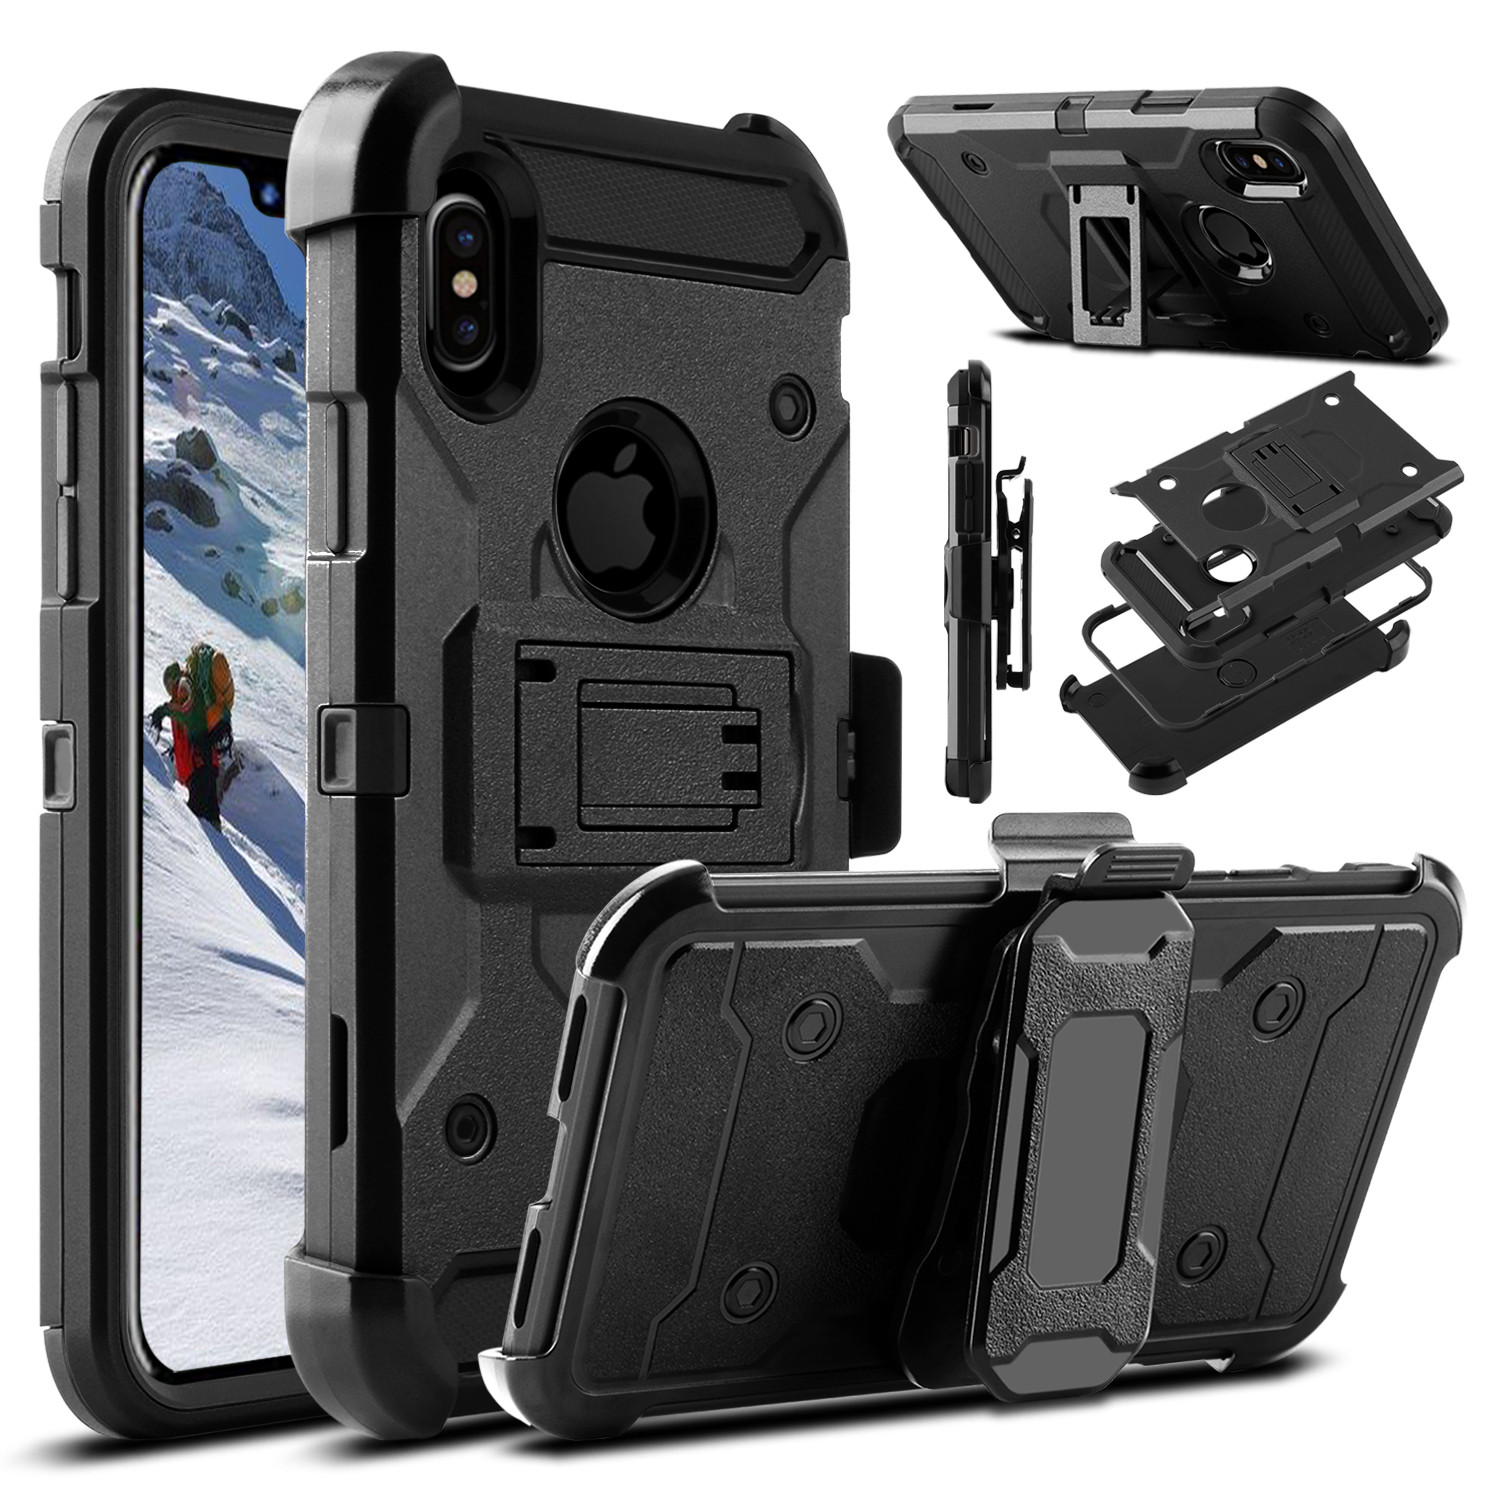 ELEGANT CHOISE iPhone X Case, 4 in 1 [Swivel Belt Clip] with [Kickstand] Heavy Duty Hybrid Dual Layer Rugged Combo Holster Case Cover for iPhone 10 (Black)